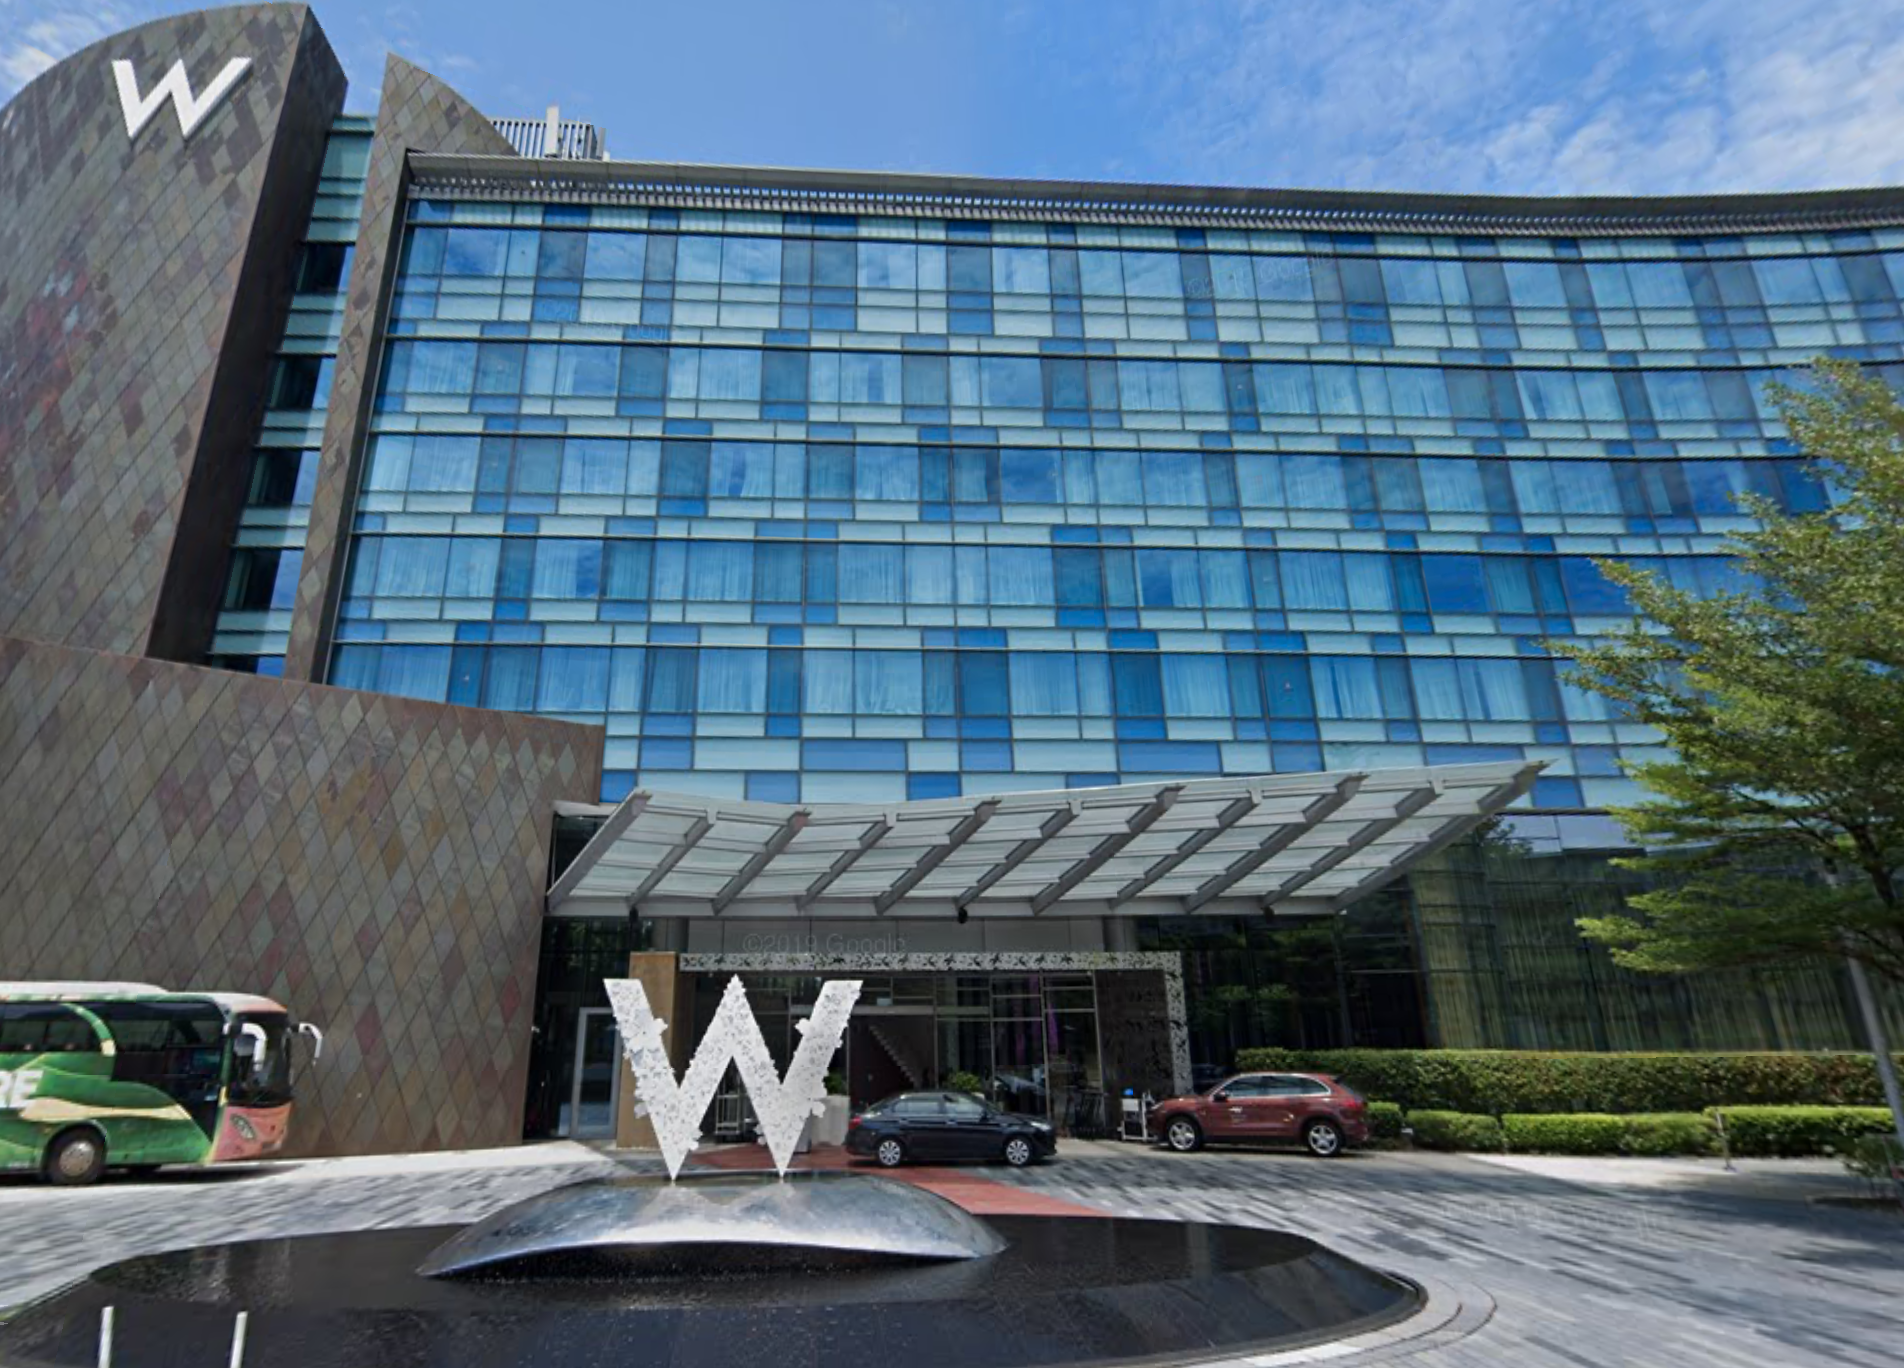 W Hotel Sentosa Cove, a property of CDL Hospitality Trust. (Photo: Google Maps)